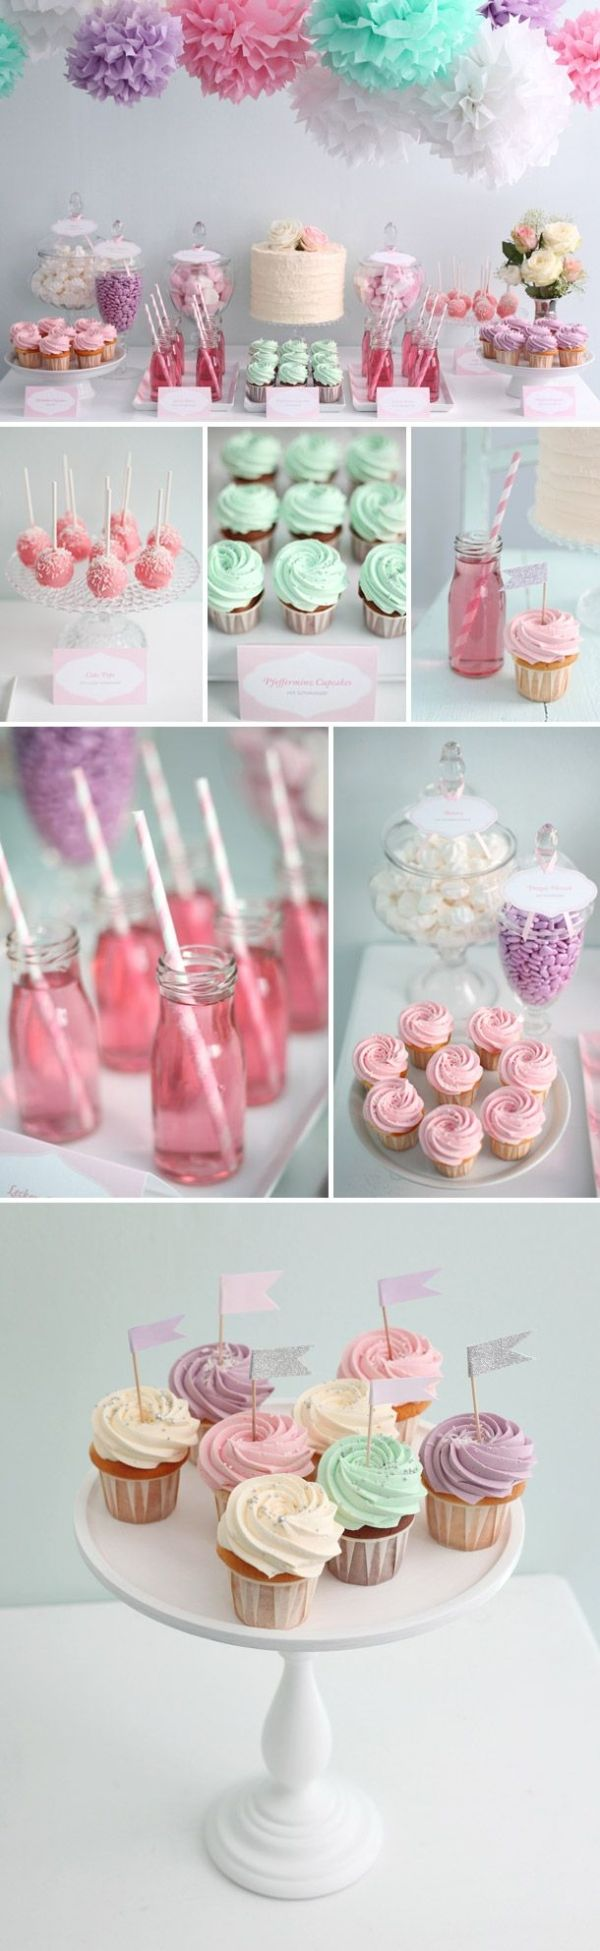 Candybar Inspirationen von Zuckermonarchie #littleunicorn